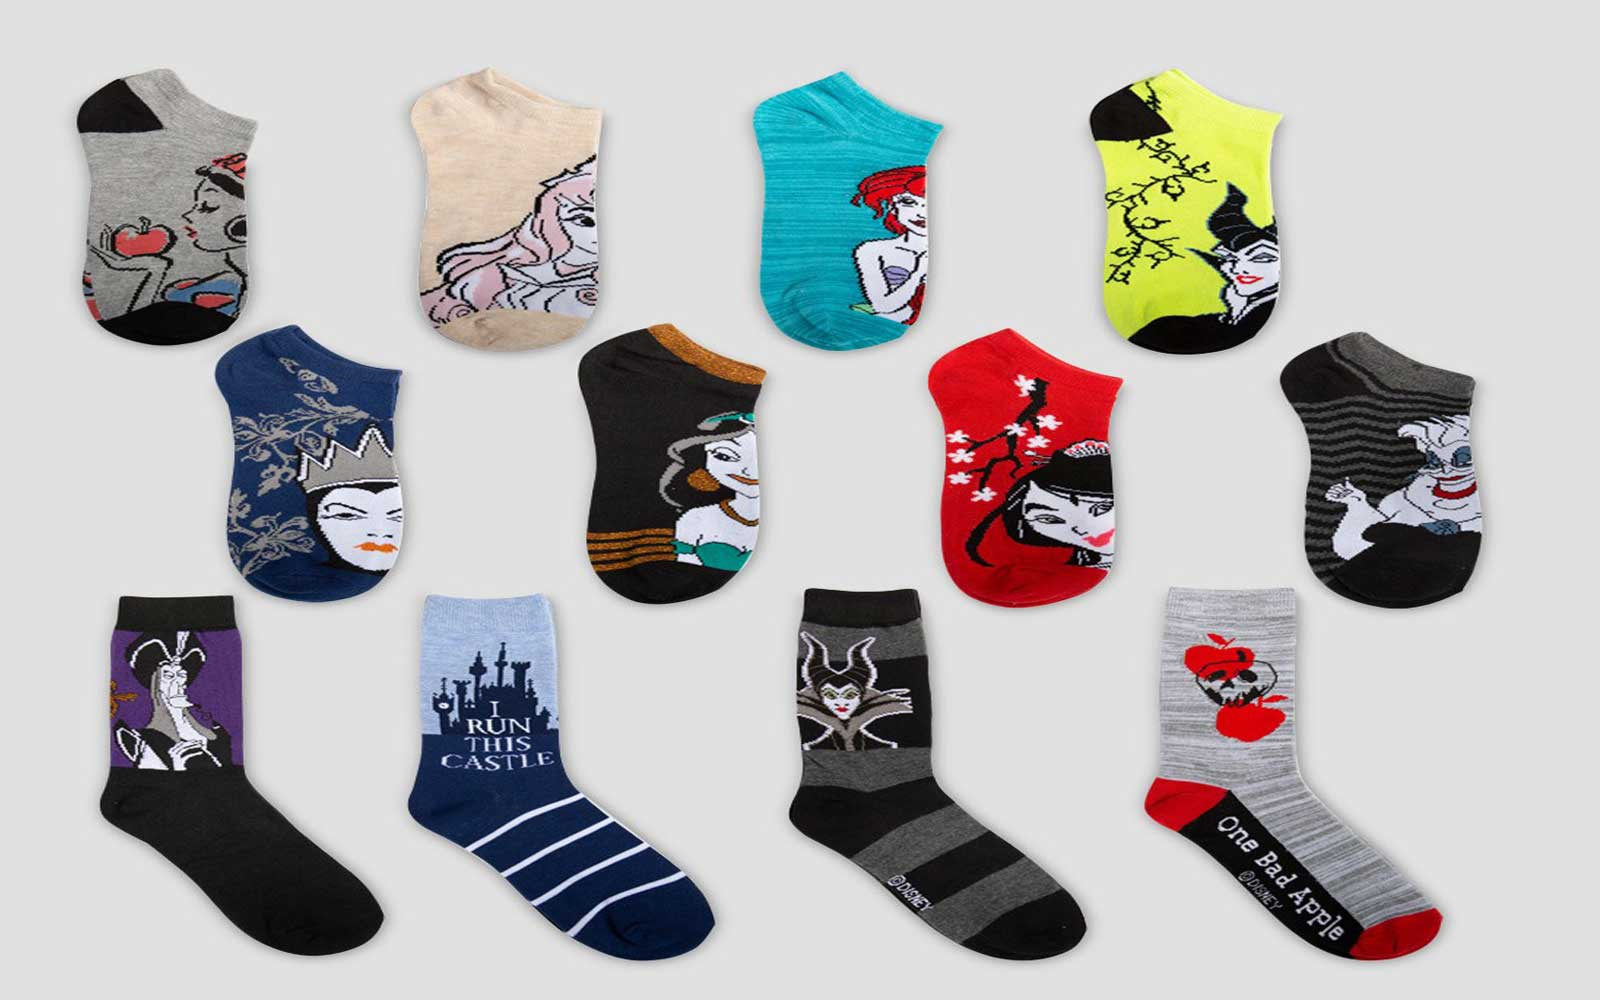 The Disney Princess sock collection features a combination of princesses and villains.